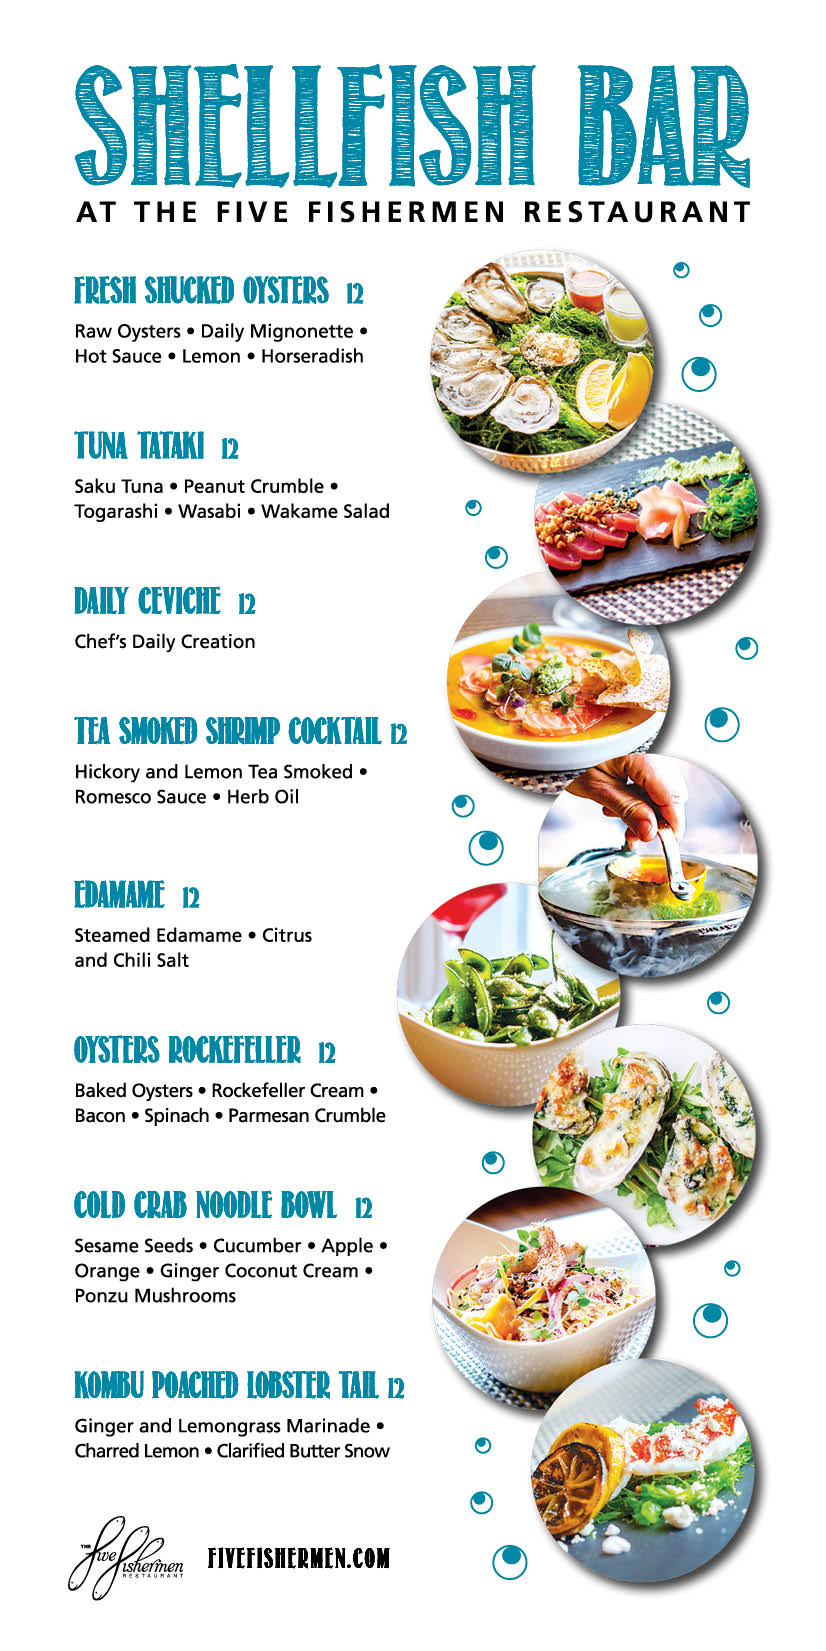 FFR_ShelfishBar_$12Menu